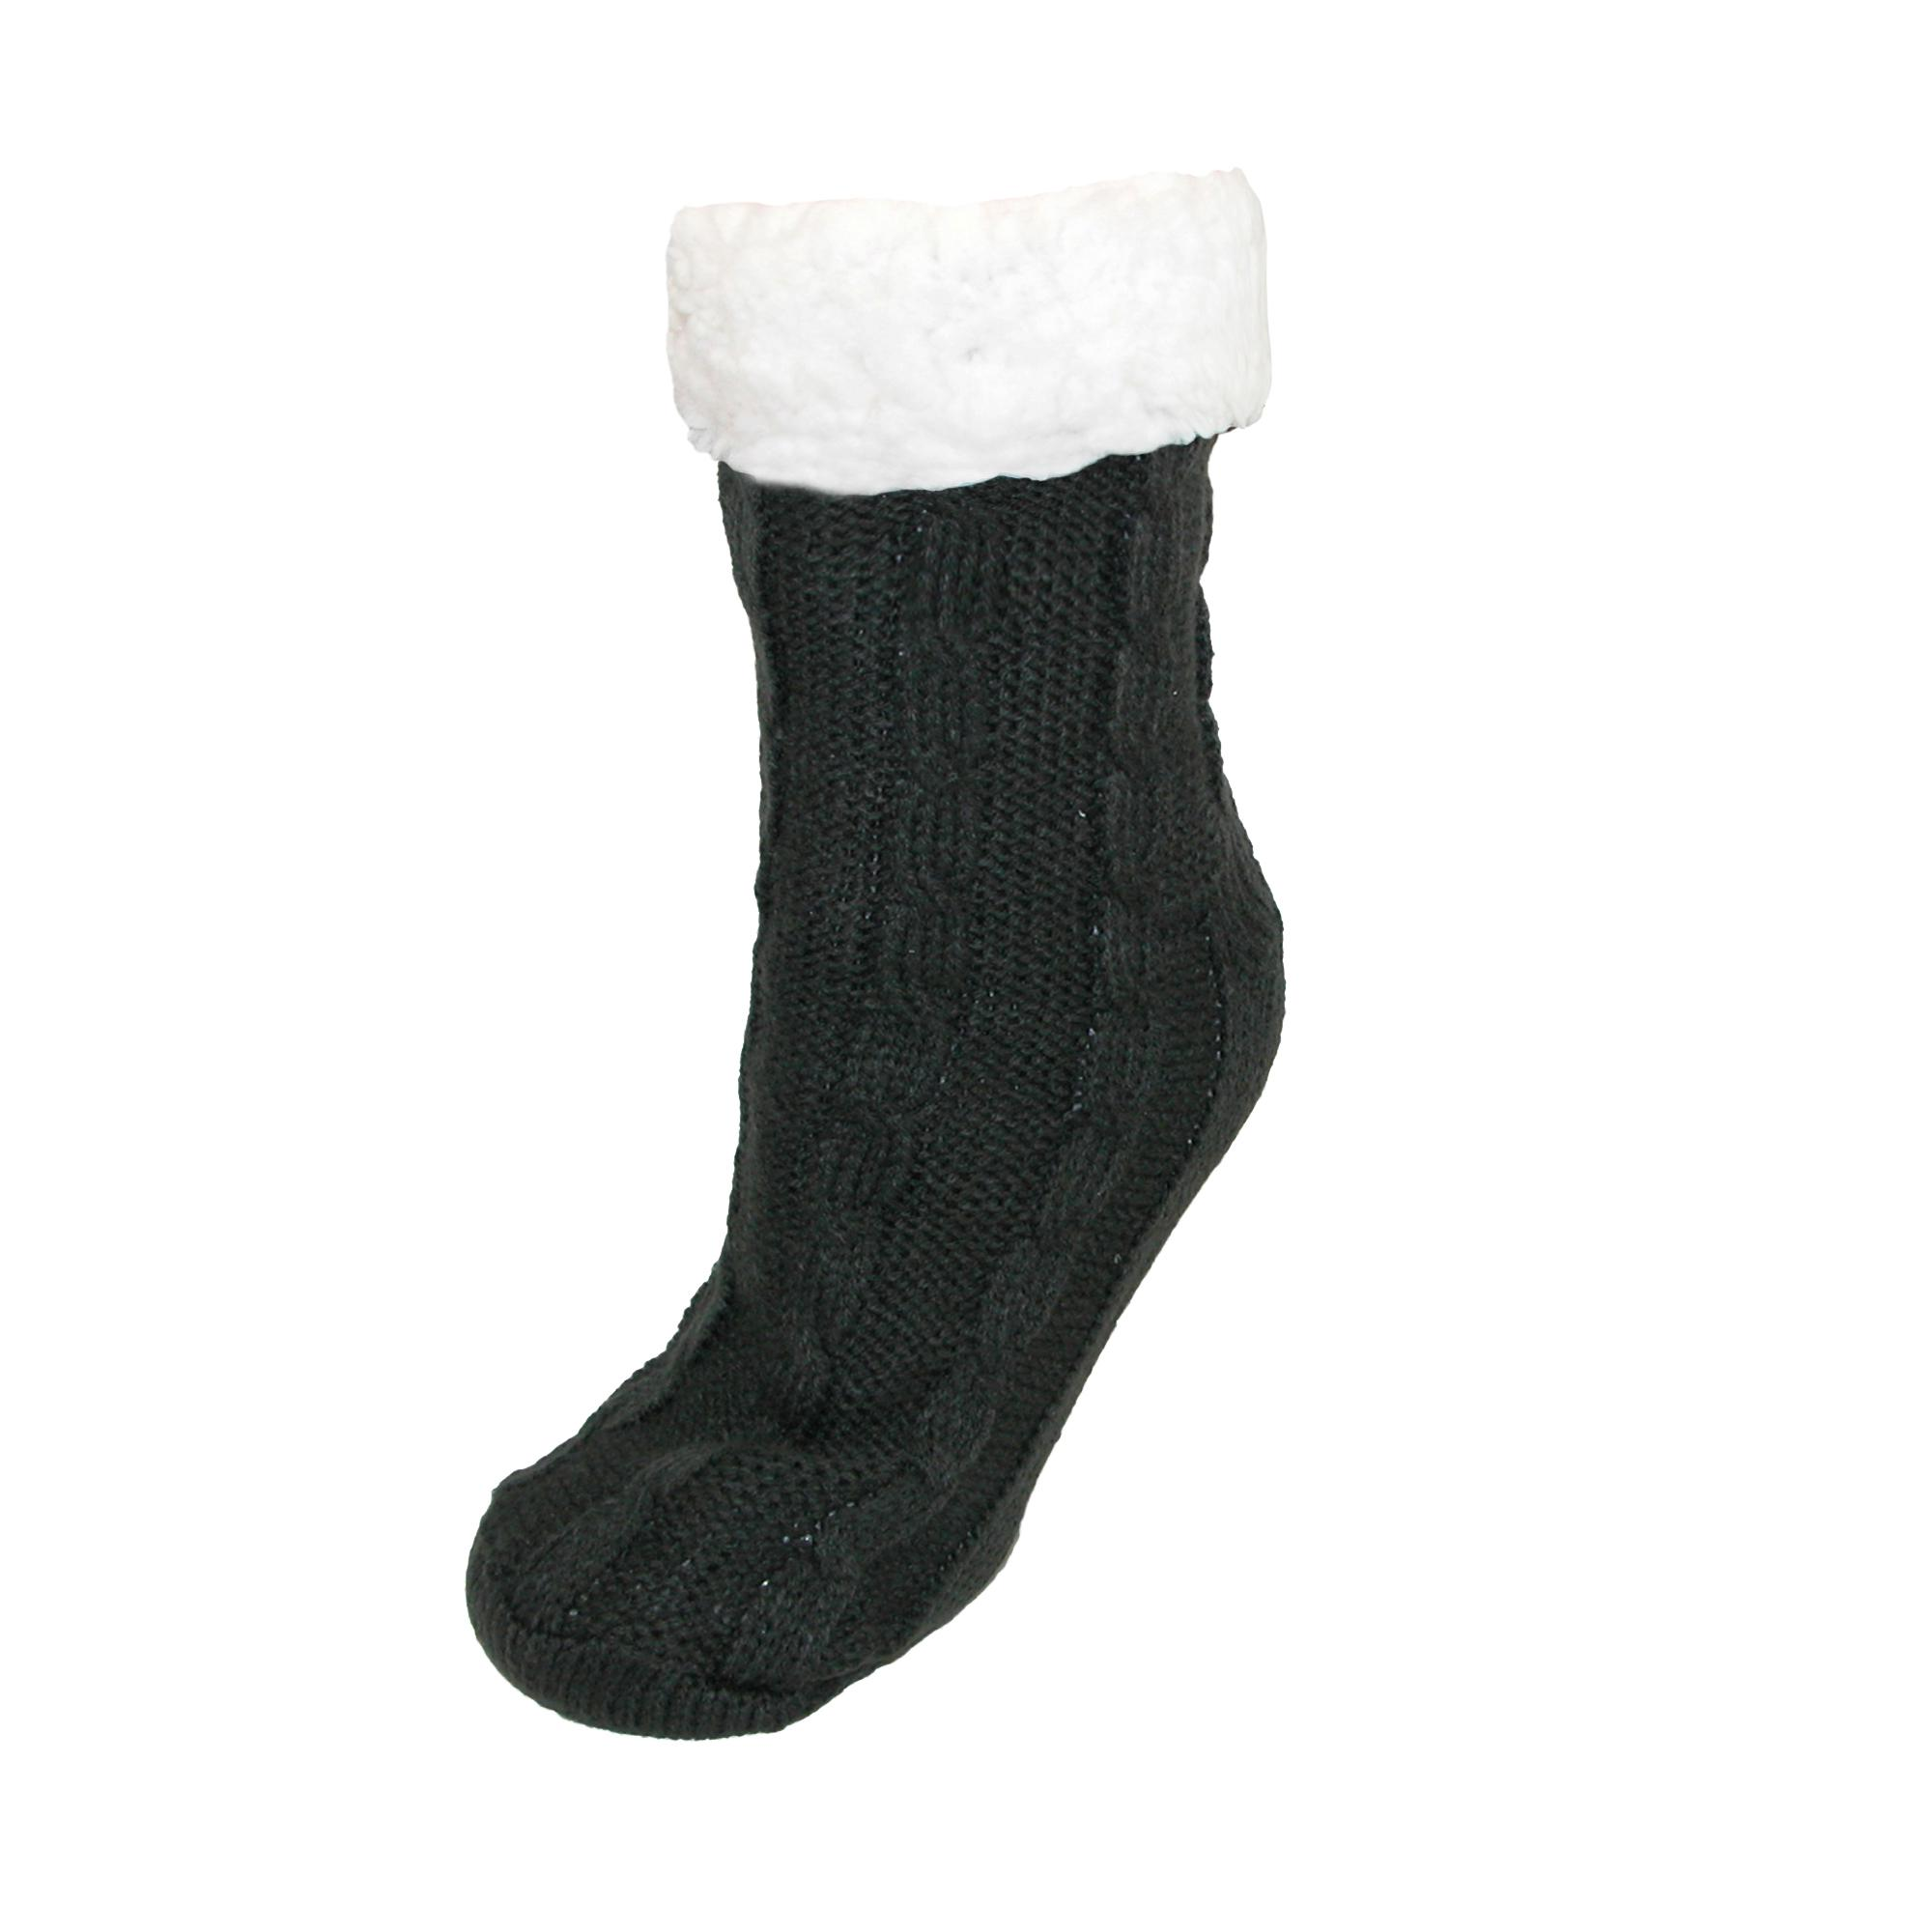 Ctm Womens Cable Knit Non-skid Slipper Sock